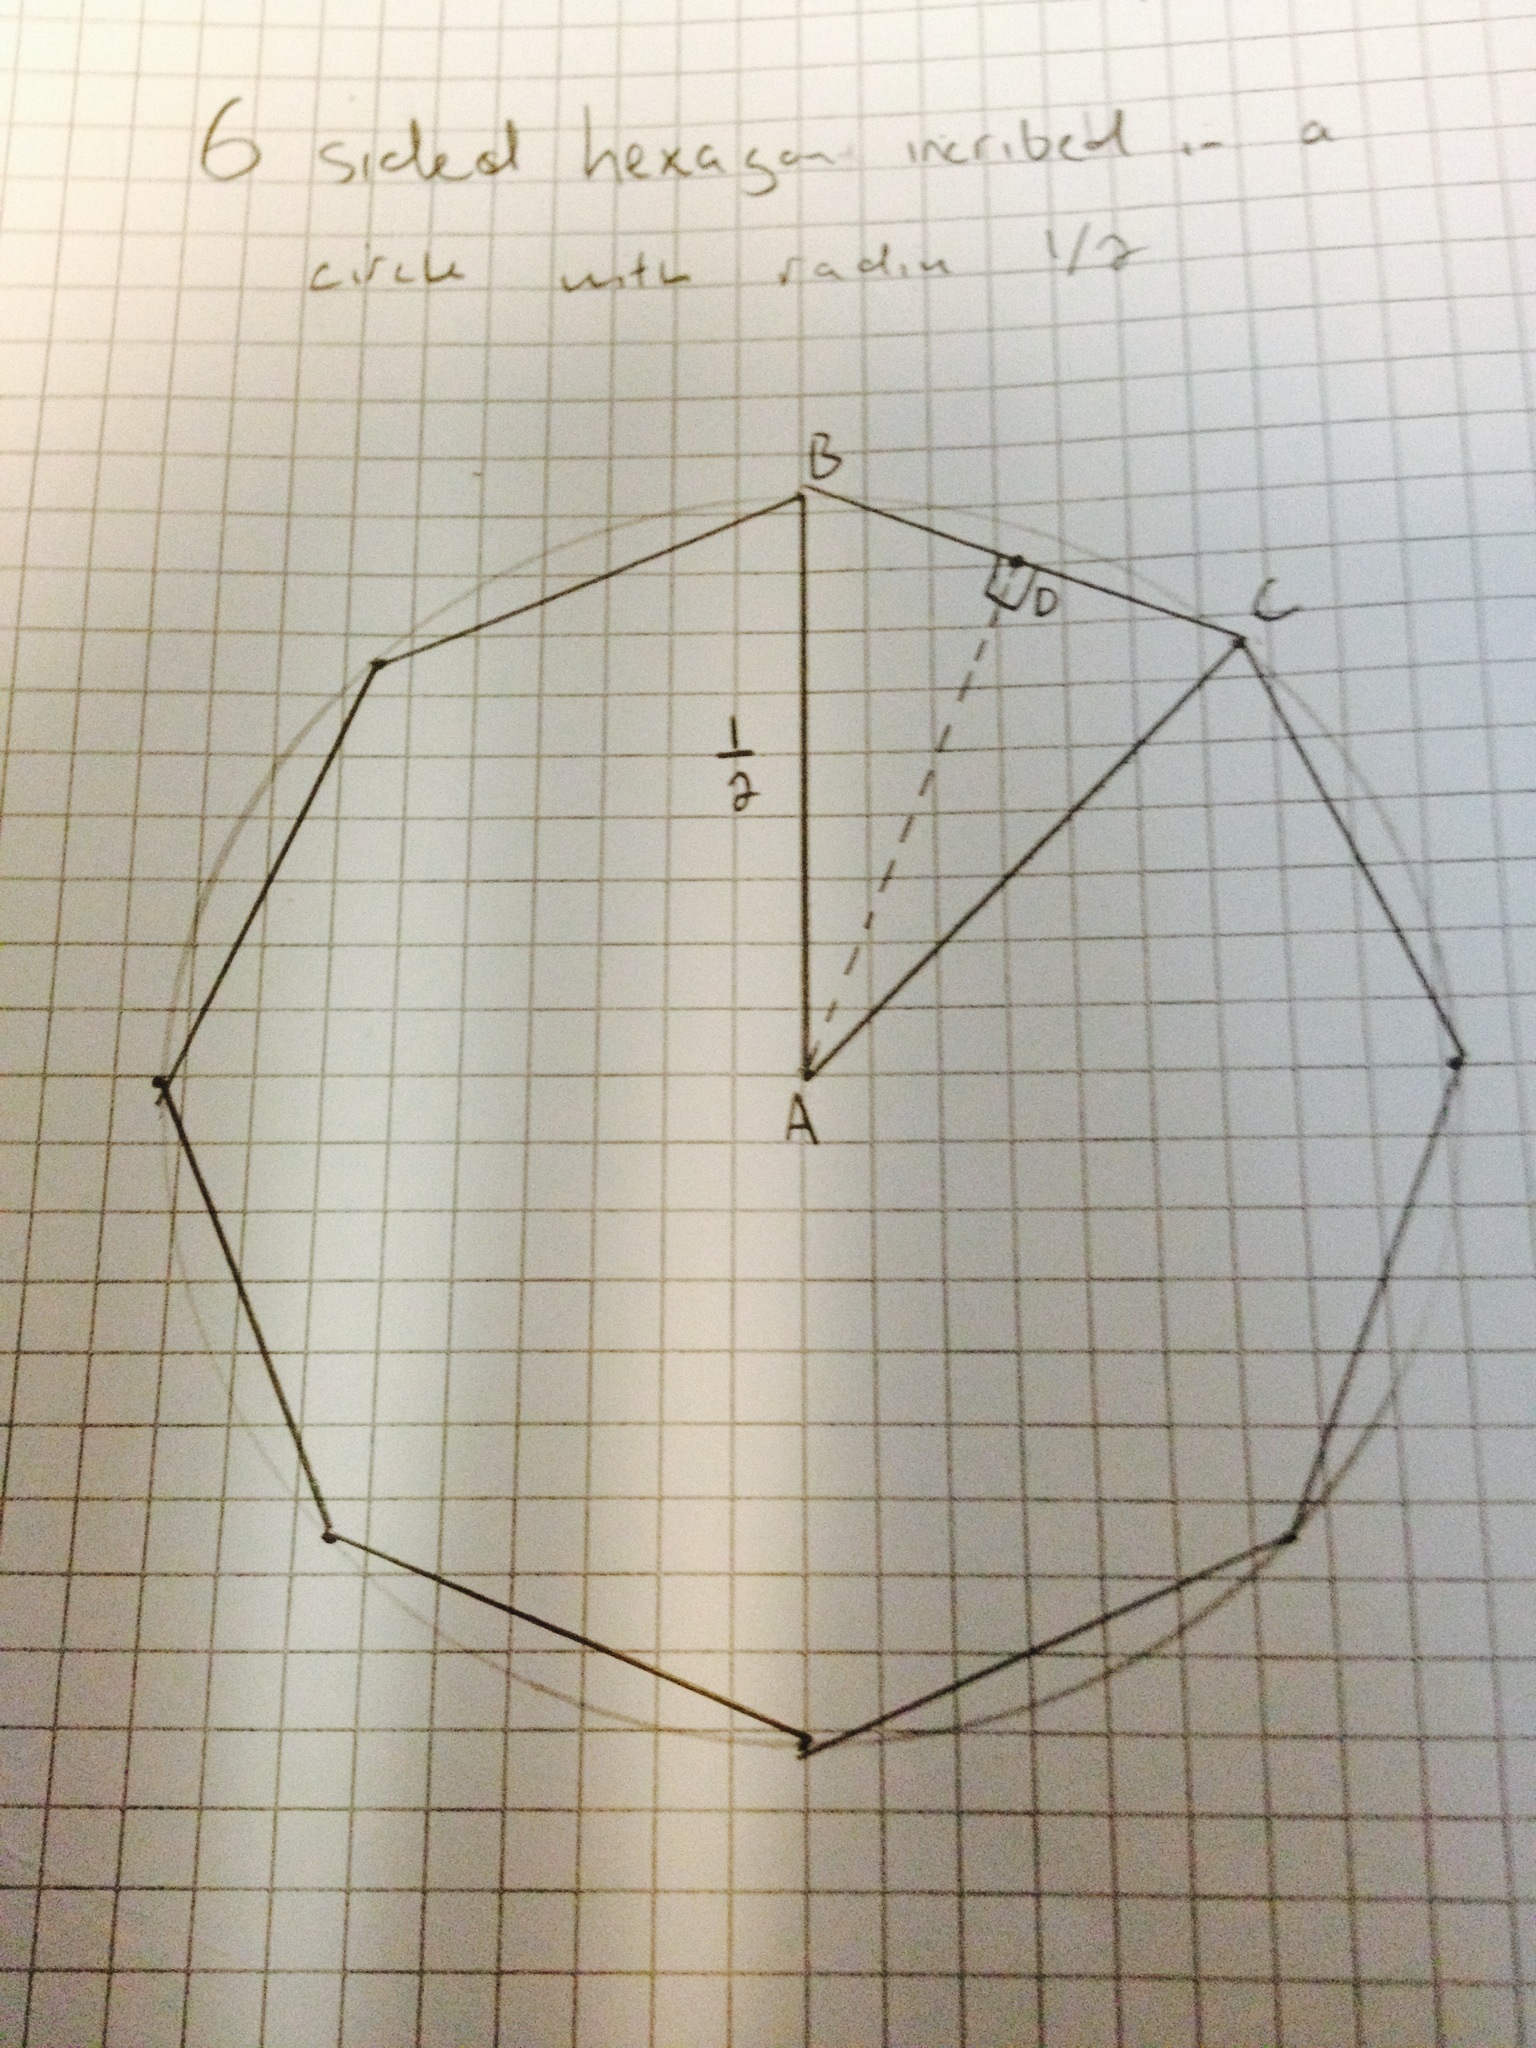 Octagon Regular Decagon Inscribed In A Circle